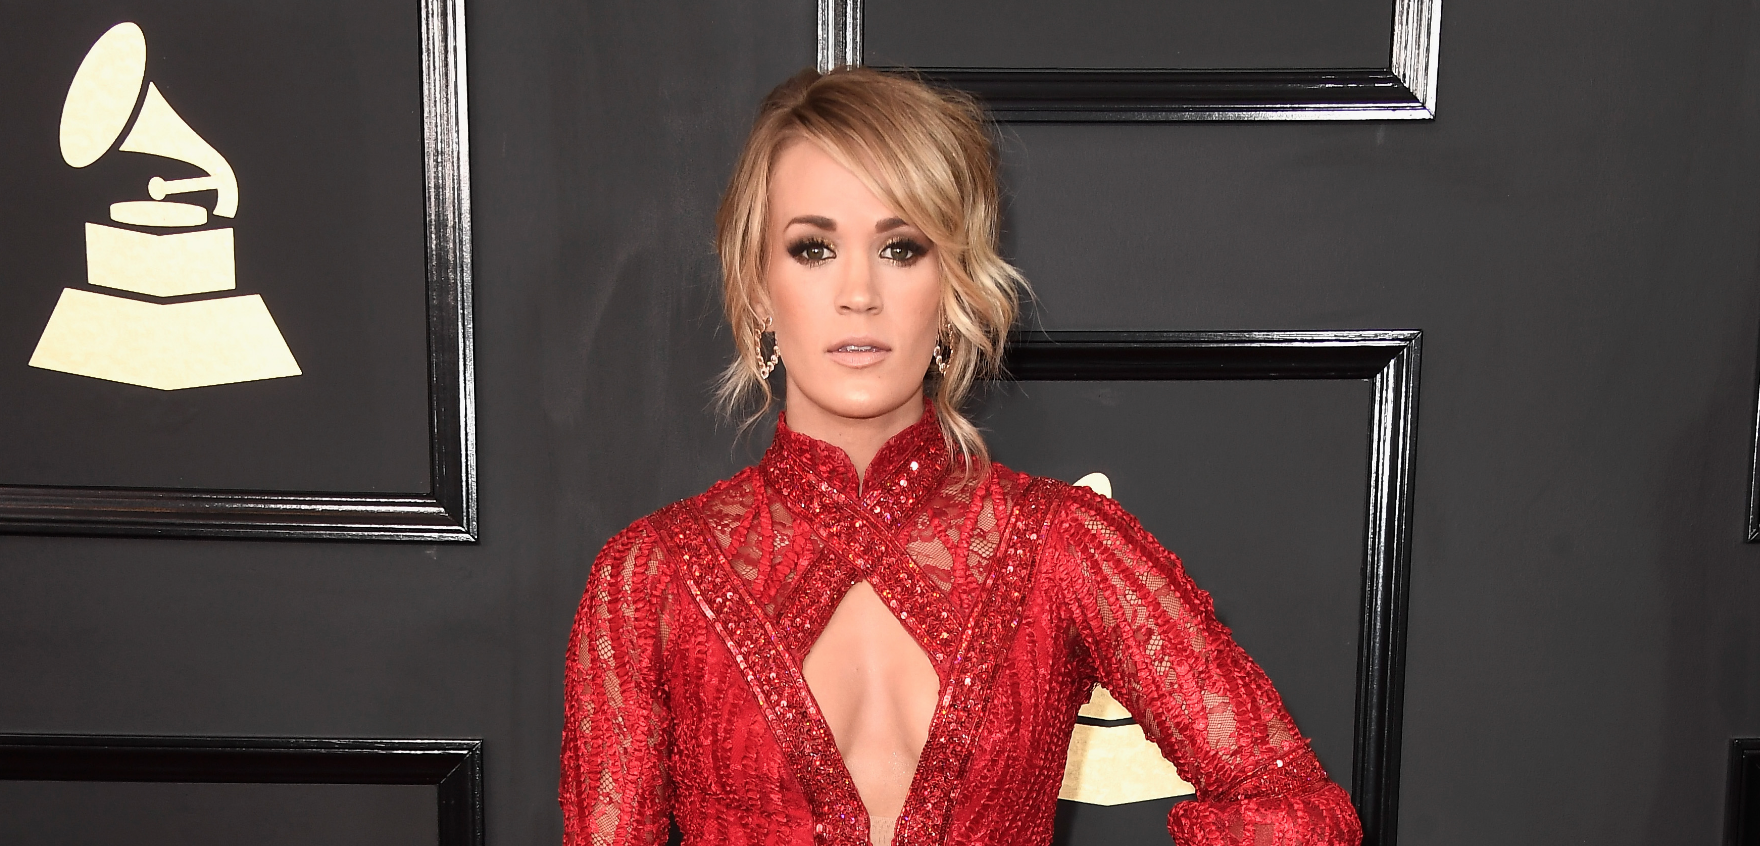 Carrie Underwood channels the dancing girl emoji in a fiery red gown at the 2017 Grammys